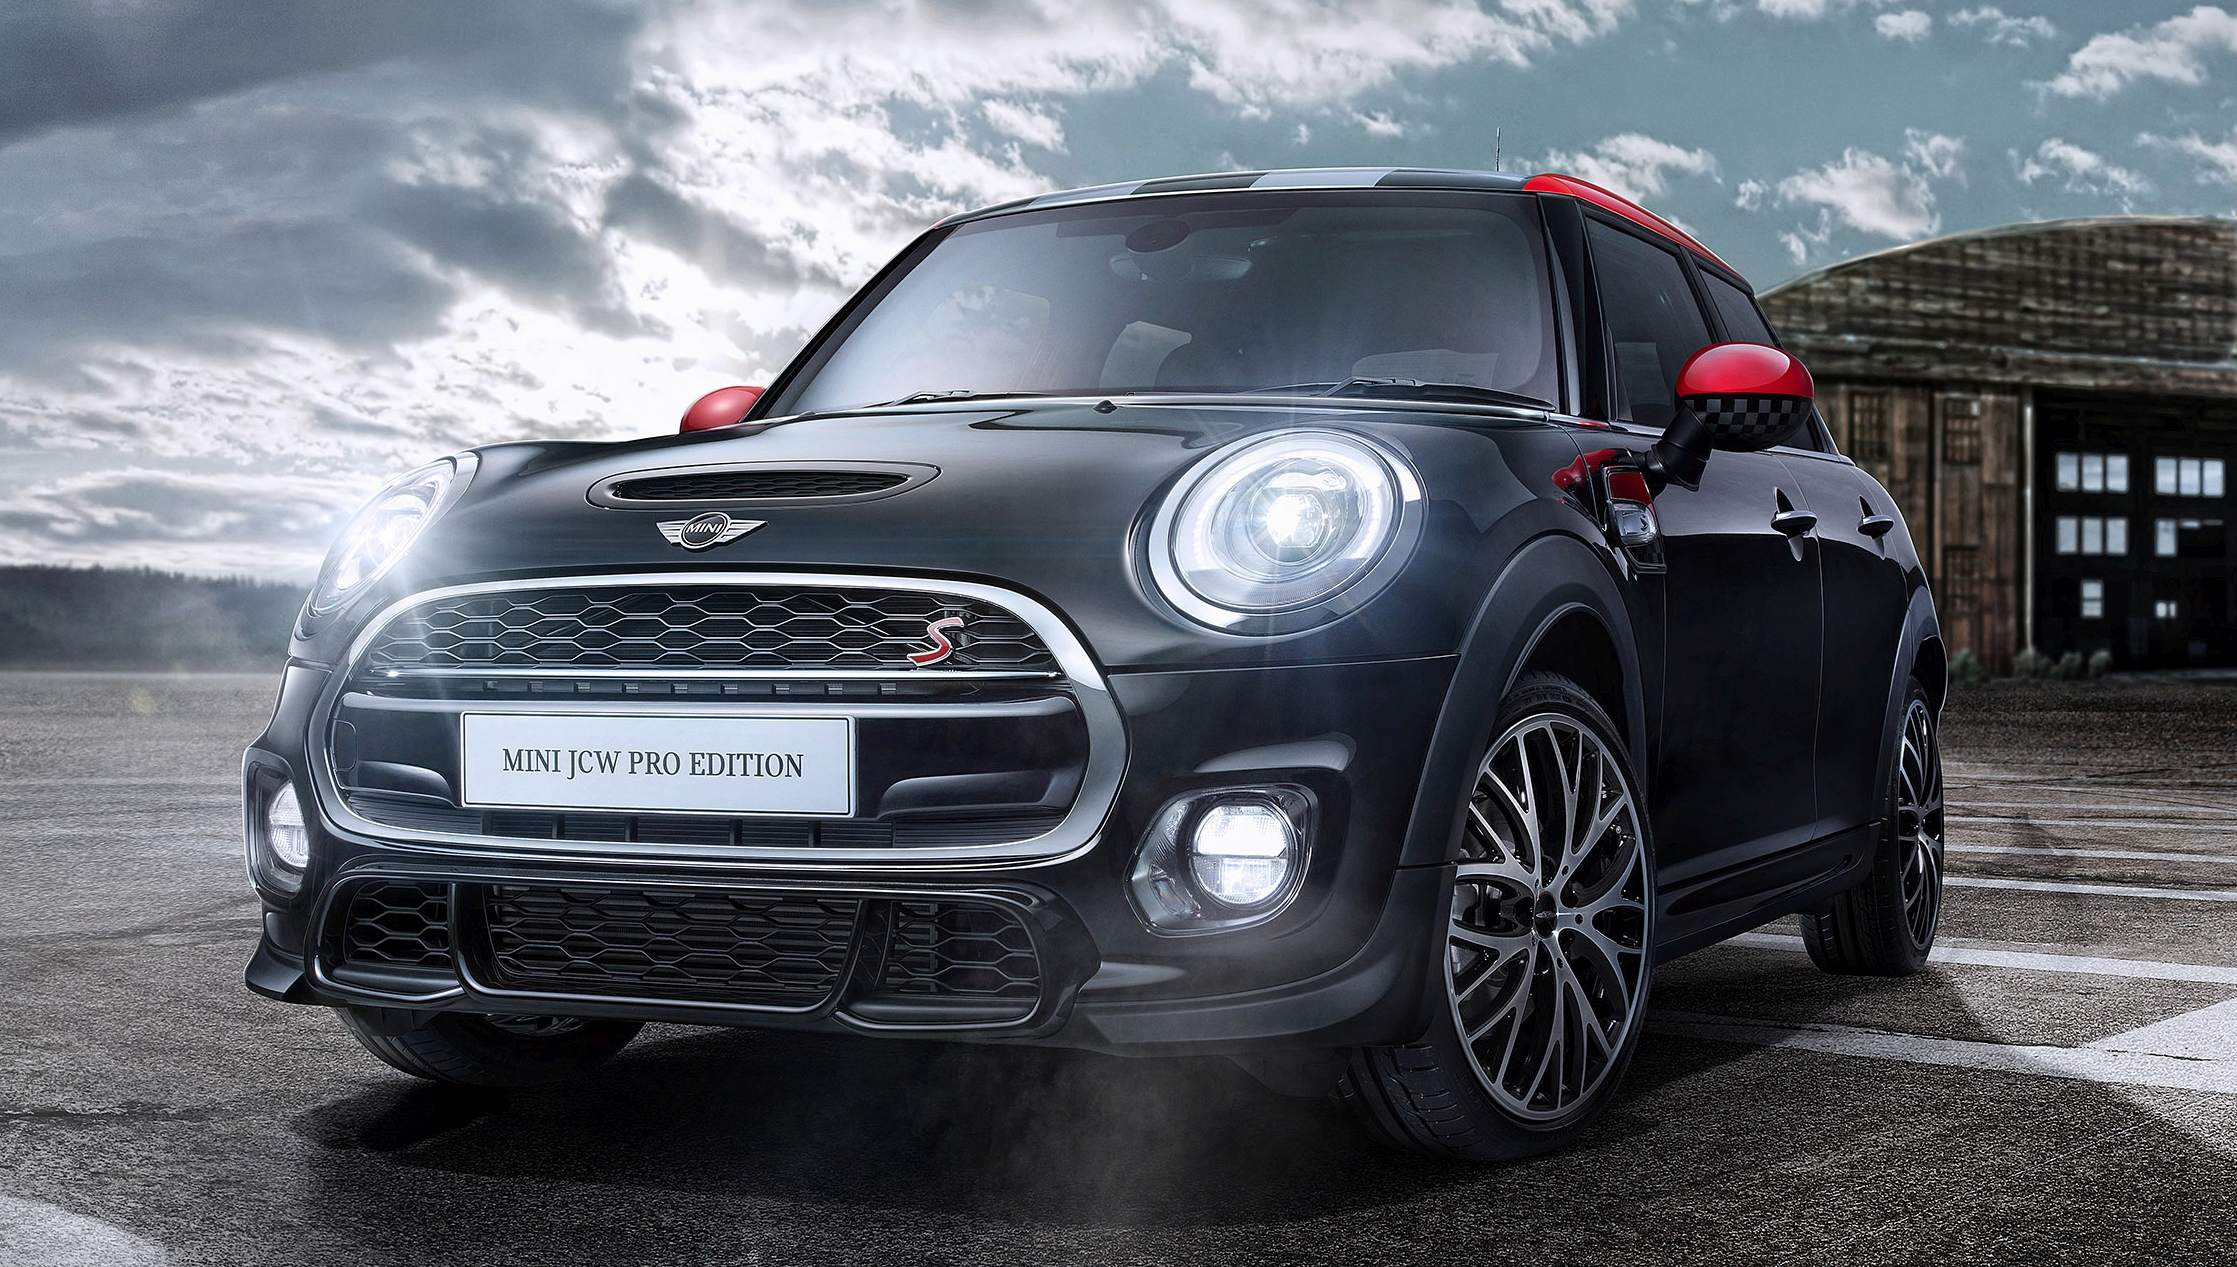 mini john cooper works pro edition launched limited run of 20 units exclusive to malaysia rm256k. Black Bedroom Furniture Sets. Home Design Ideas